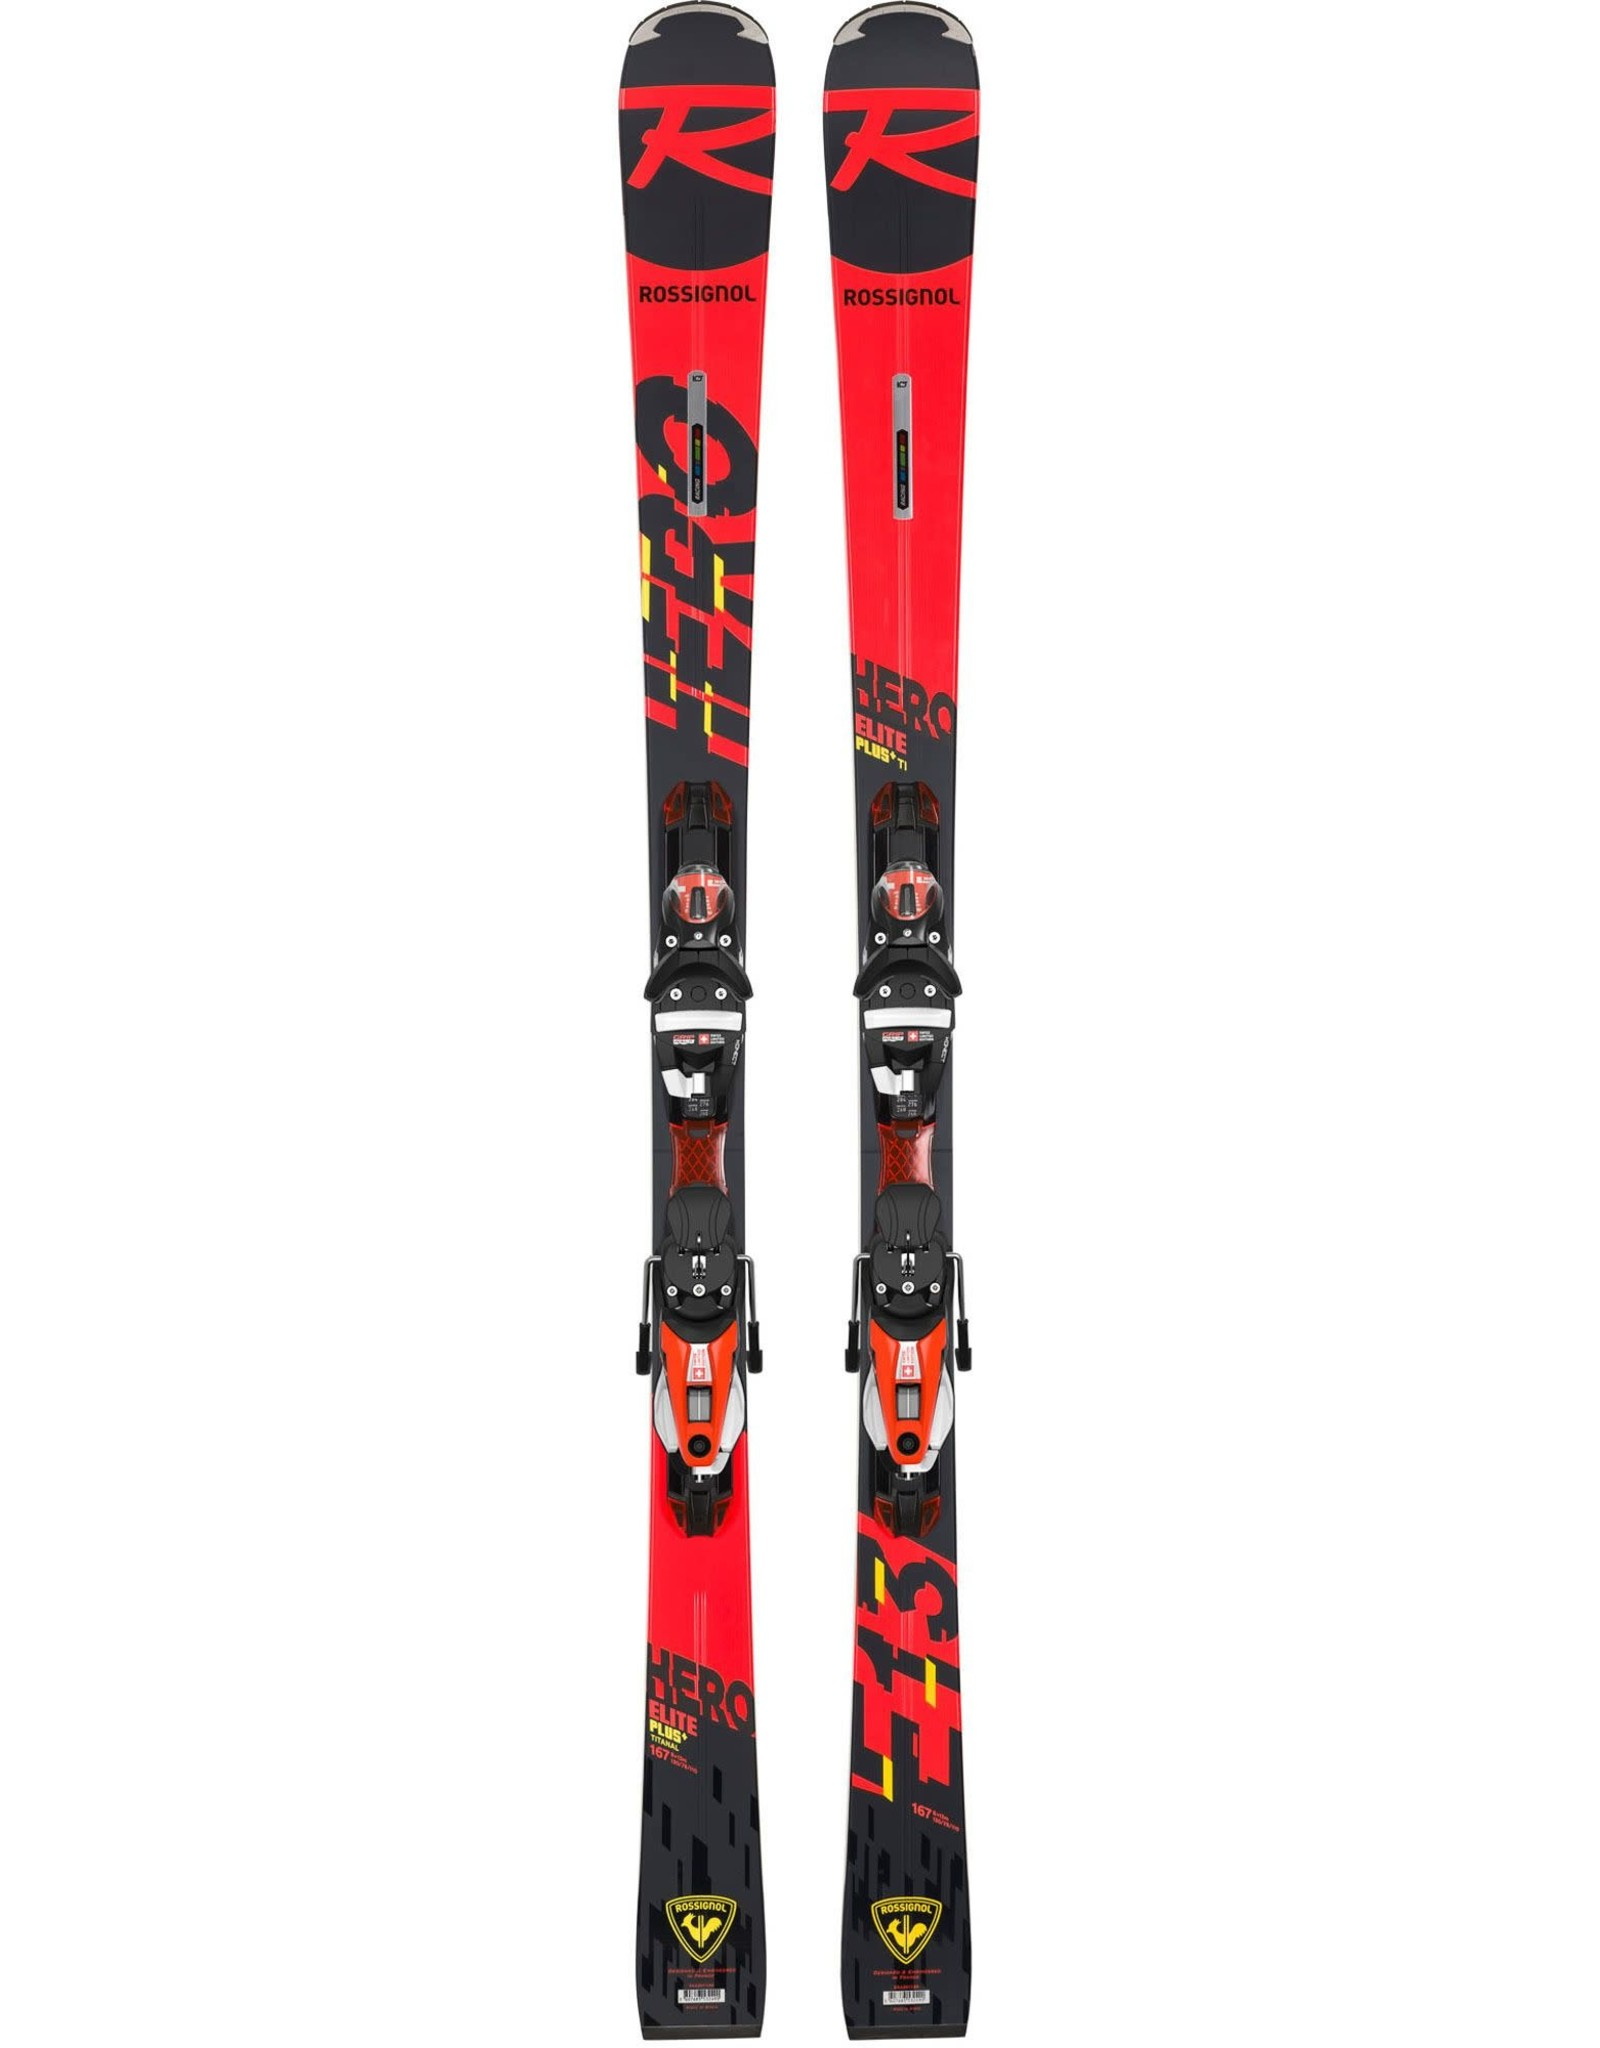 ROSSIGNOL DEMO ROSSIGNOL HERO ELITE PLUS TI 167 CM